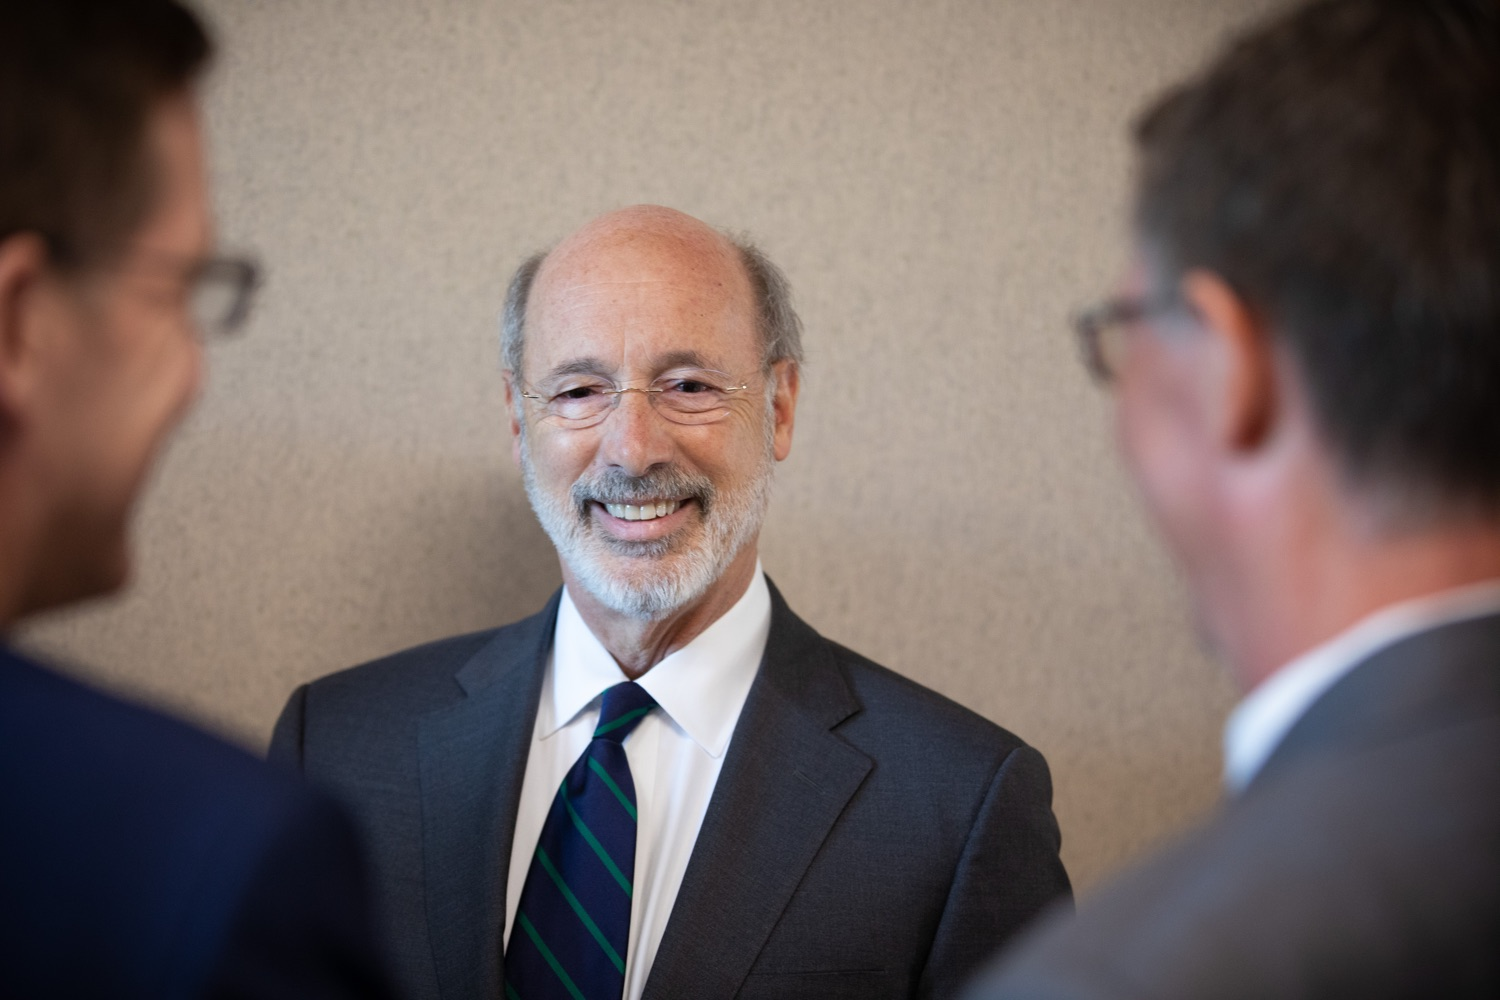 """<a href=""""https://filesource.wostreaming.net/commonwealthofpa/photo/17467_gov_opioids_dz_015.JPG"""" target=""""_blank"""">⇣Download Photo<br></a>Boalsburg, PA  Governor Tom Wolf speaking with summit attendees. Governor Tom Wolf today kicked off his administrations first Opioid Command Center Opioid Summit: Think Globally, Act Locally, which brought together 200 individuals helping their communities fight the opioid crisis, including community organizations, non-profits, schools, health care workers, addiction and recovery specialists, and families affected by the opioid crisis.  Tuesday, October 1, 2019Harrisburg, PA  Governor Tom Wolf today kicked off his administrations first Opioid Command Center Opioid Summit: Think Globally, Act Locally, which brought together 200 individuals helping their communities fight the opioid crisis, including community organizations, non-profits, schools, health care workers, addiction and recovery specialists, and families affected by the opioid crisis.  Tuesday, October 1, 2019"""